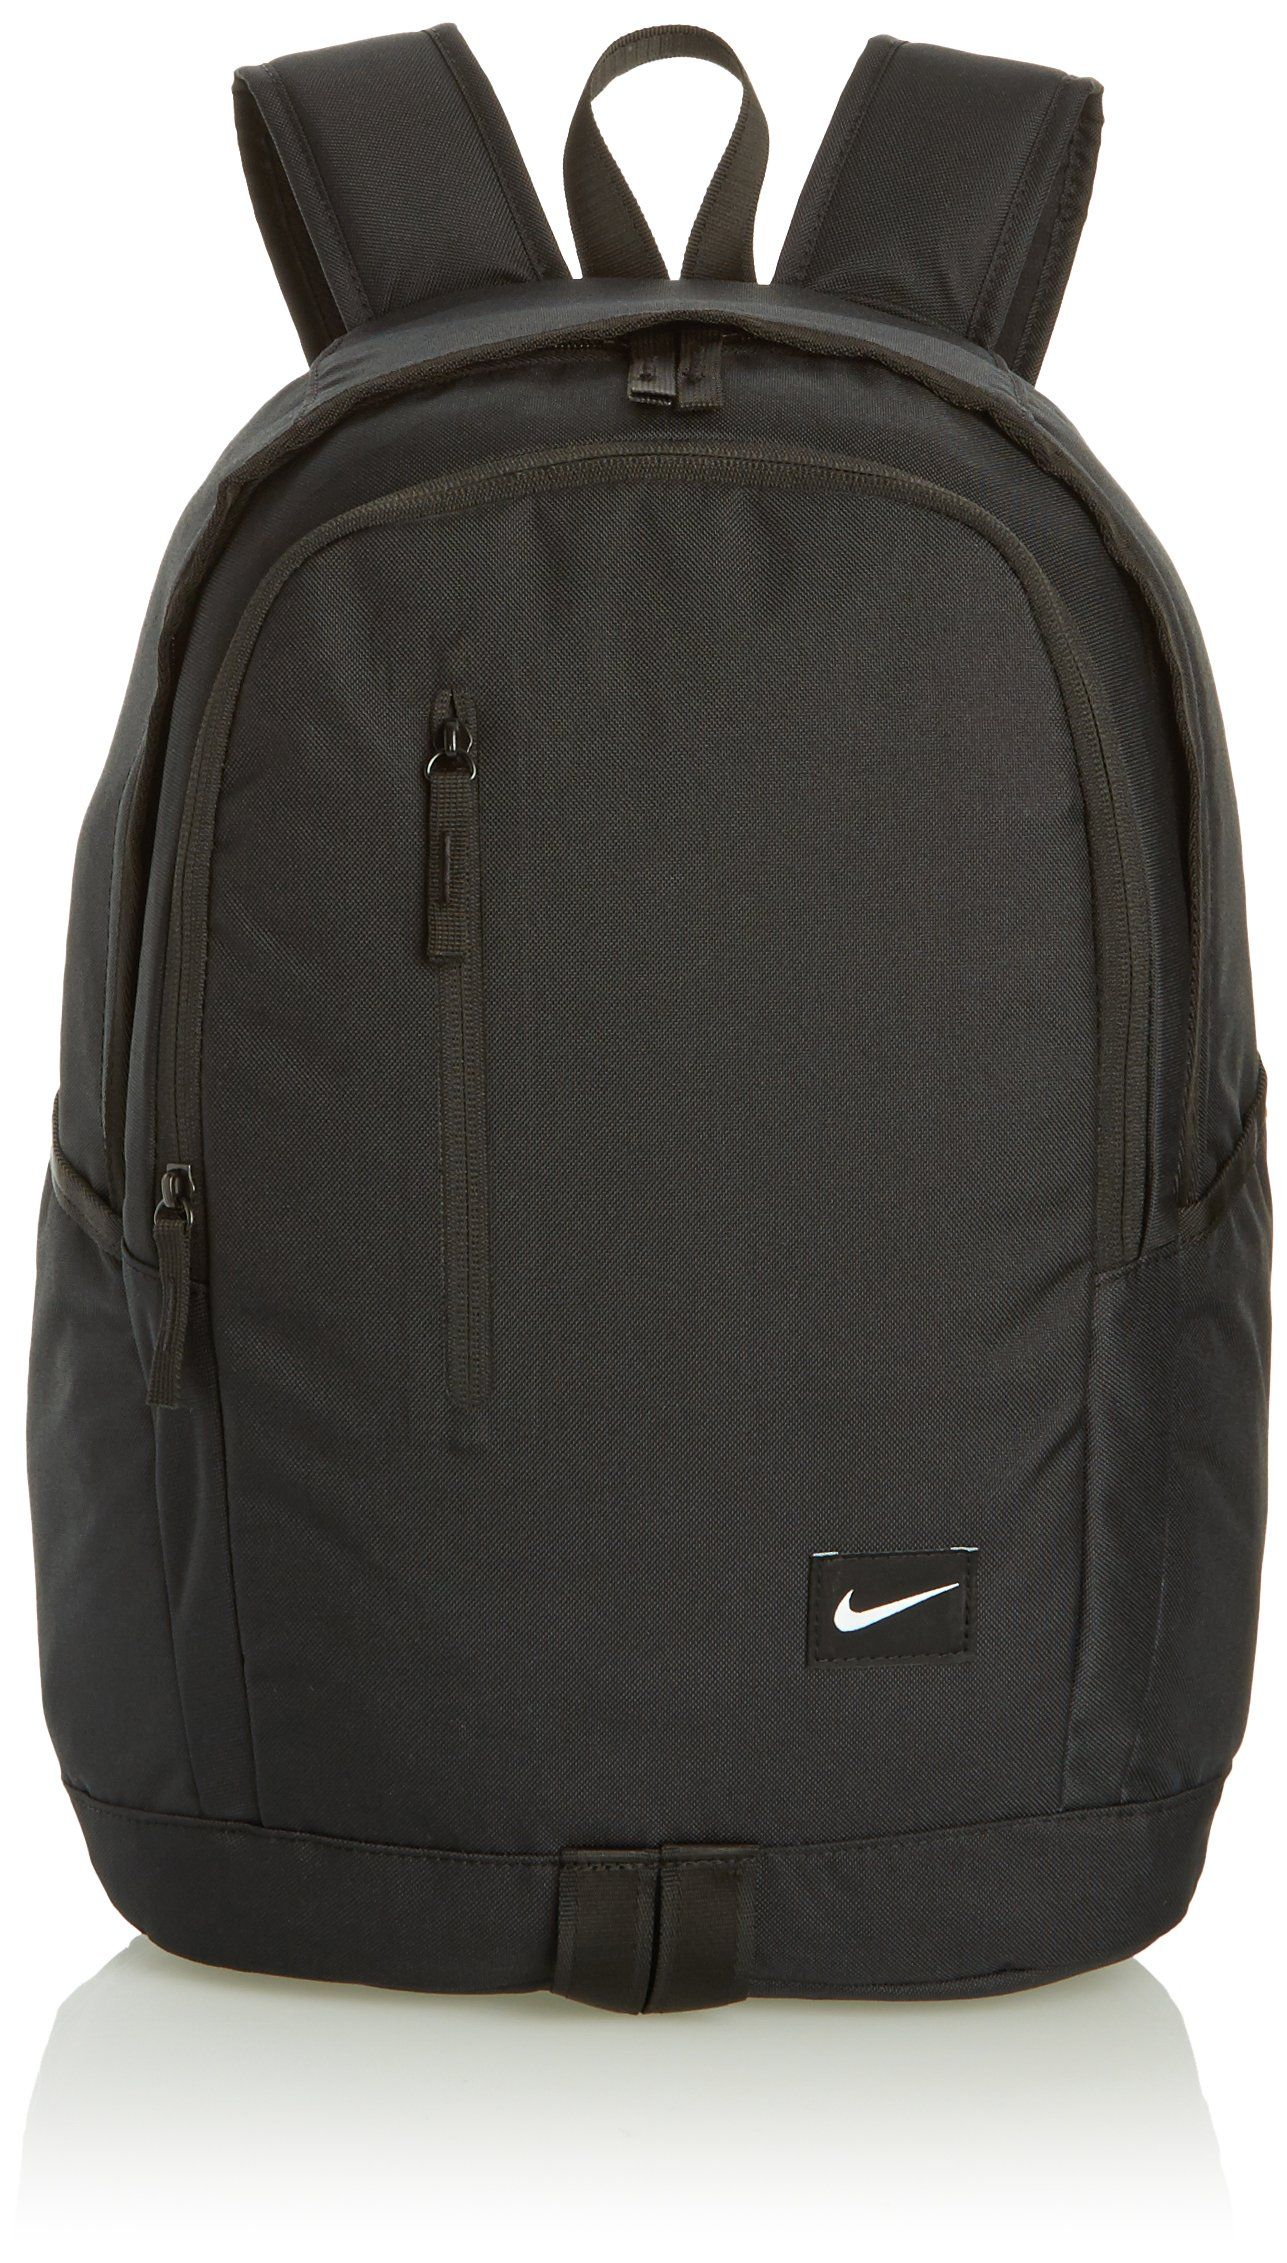 b2ec342c95 NIKE Male ALL ACCESS SOLEDAY Backpack Book Bag BA4857-001. Tough 600D  polyester helps